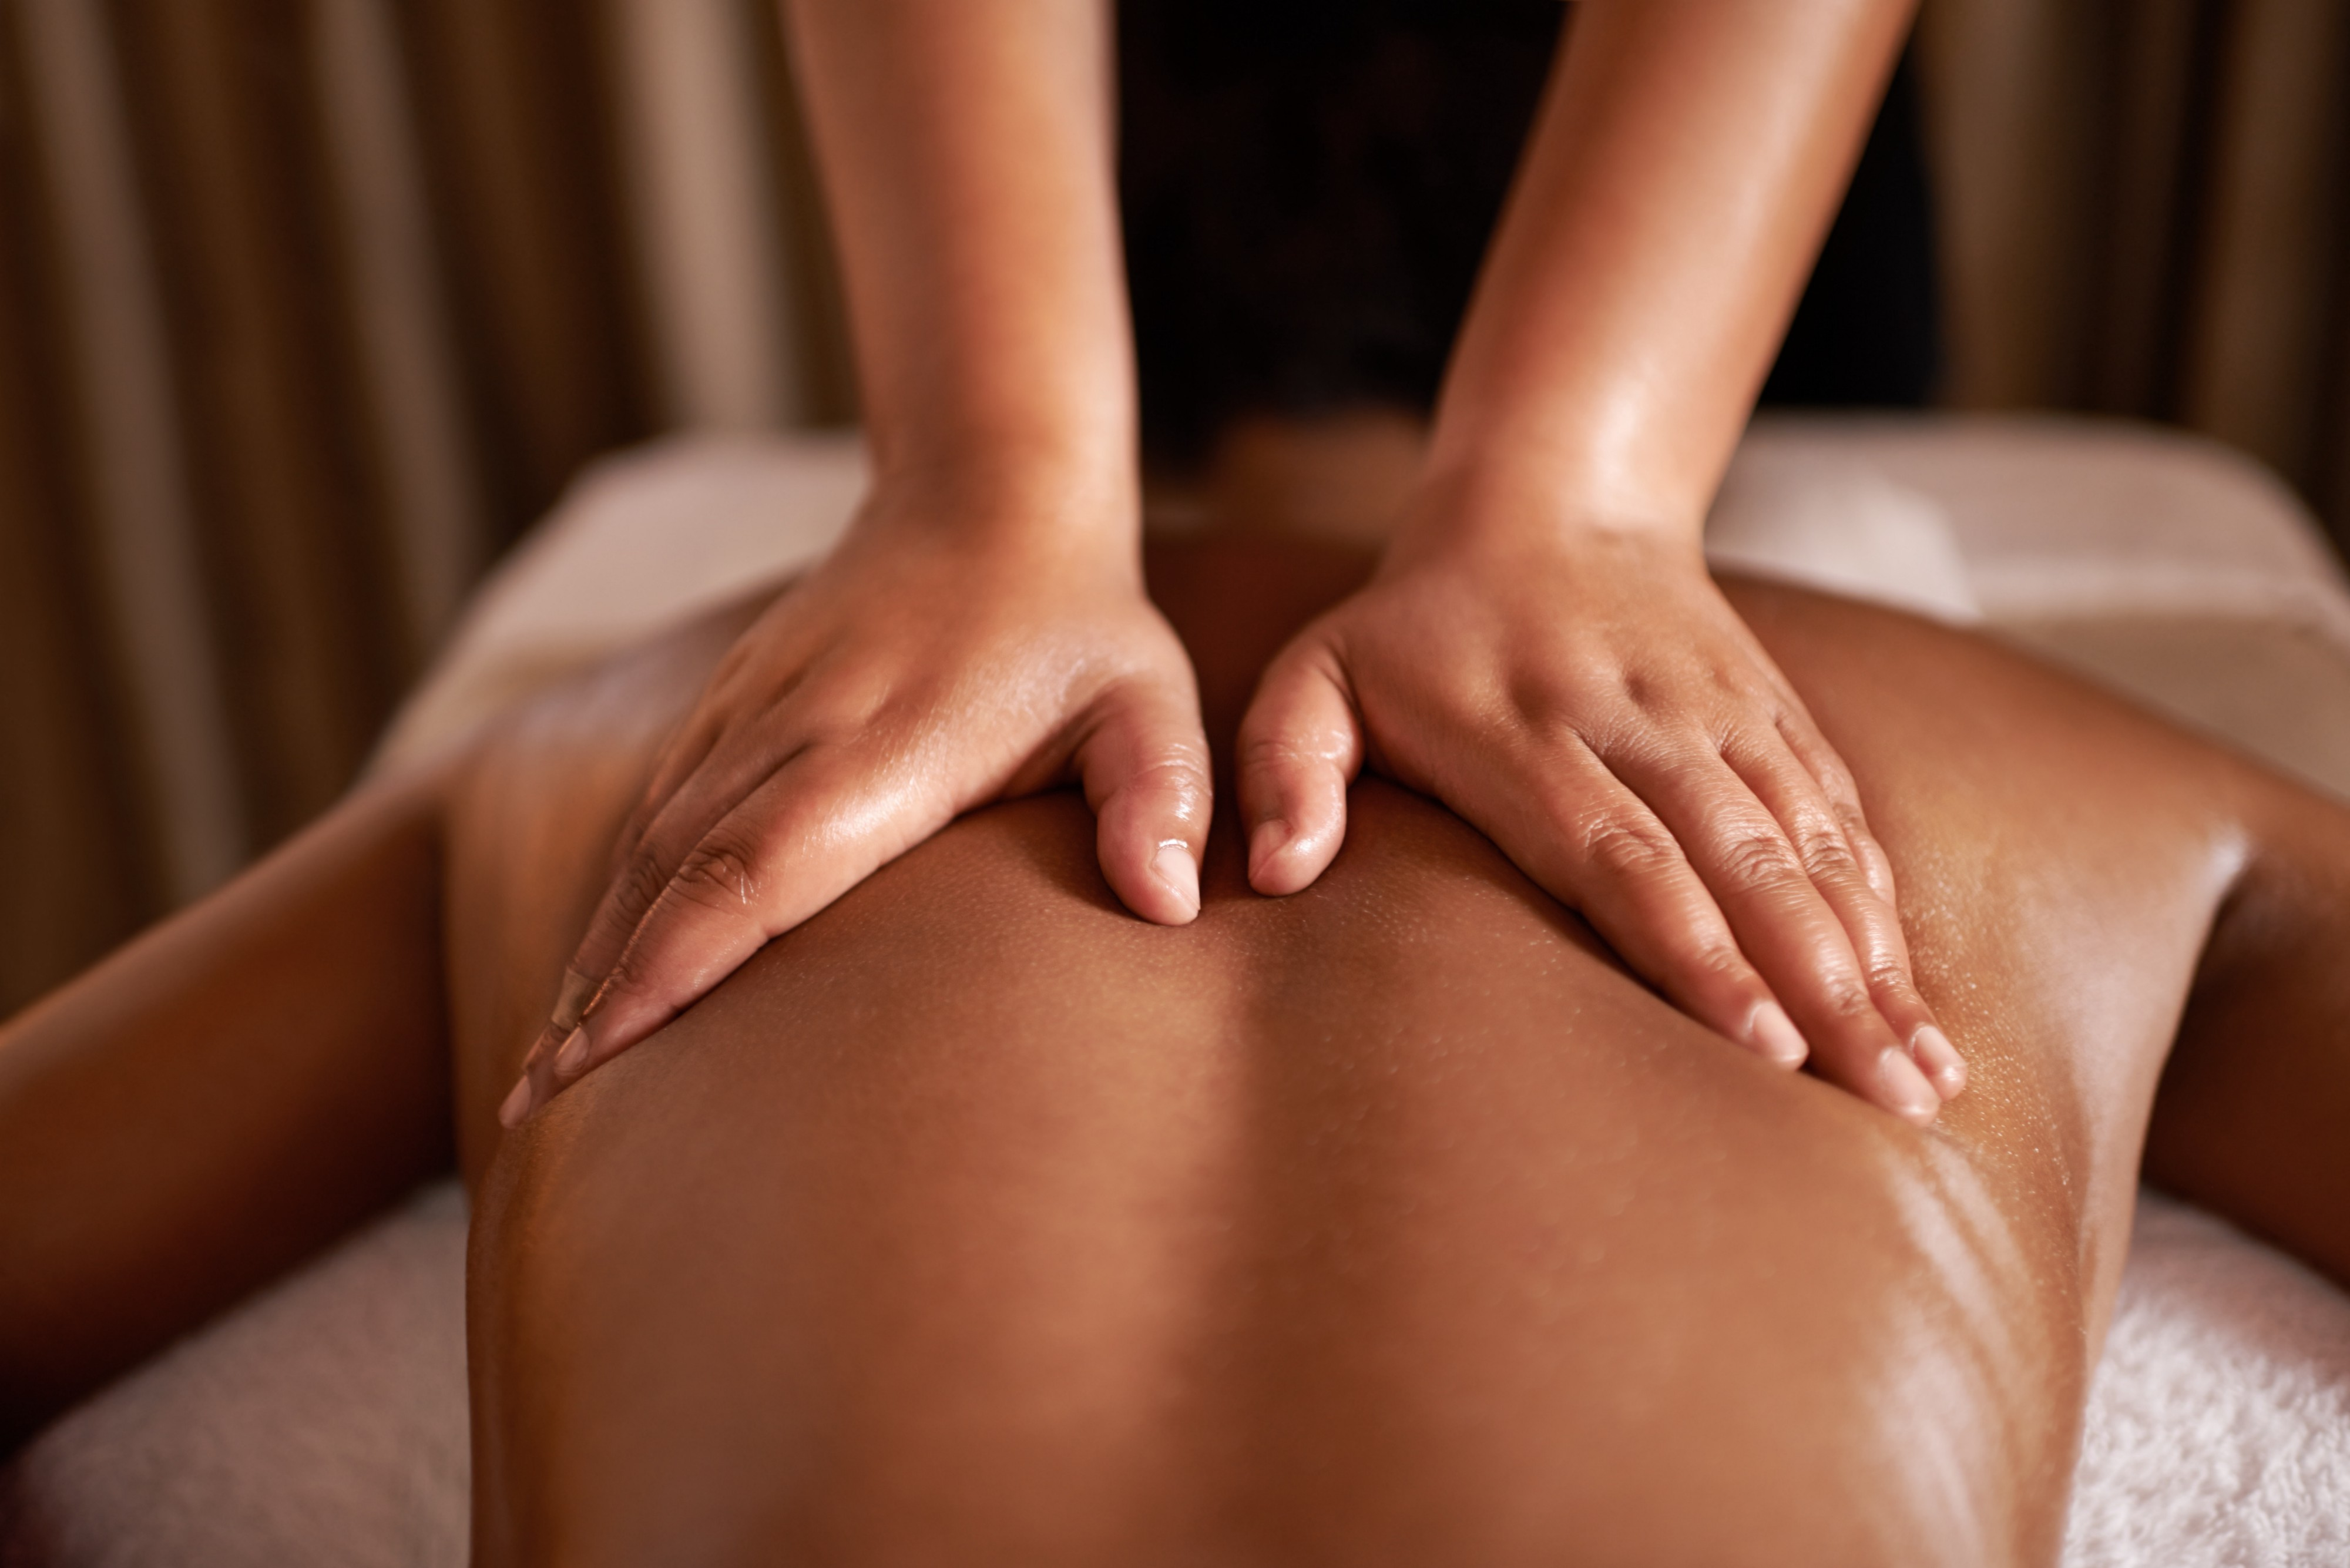 The Science-Backed Benefits of Massage | by Markham Heid | Elemental